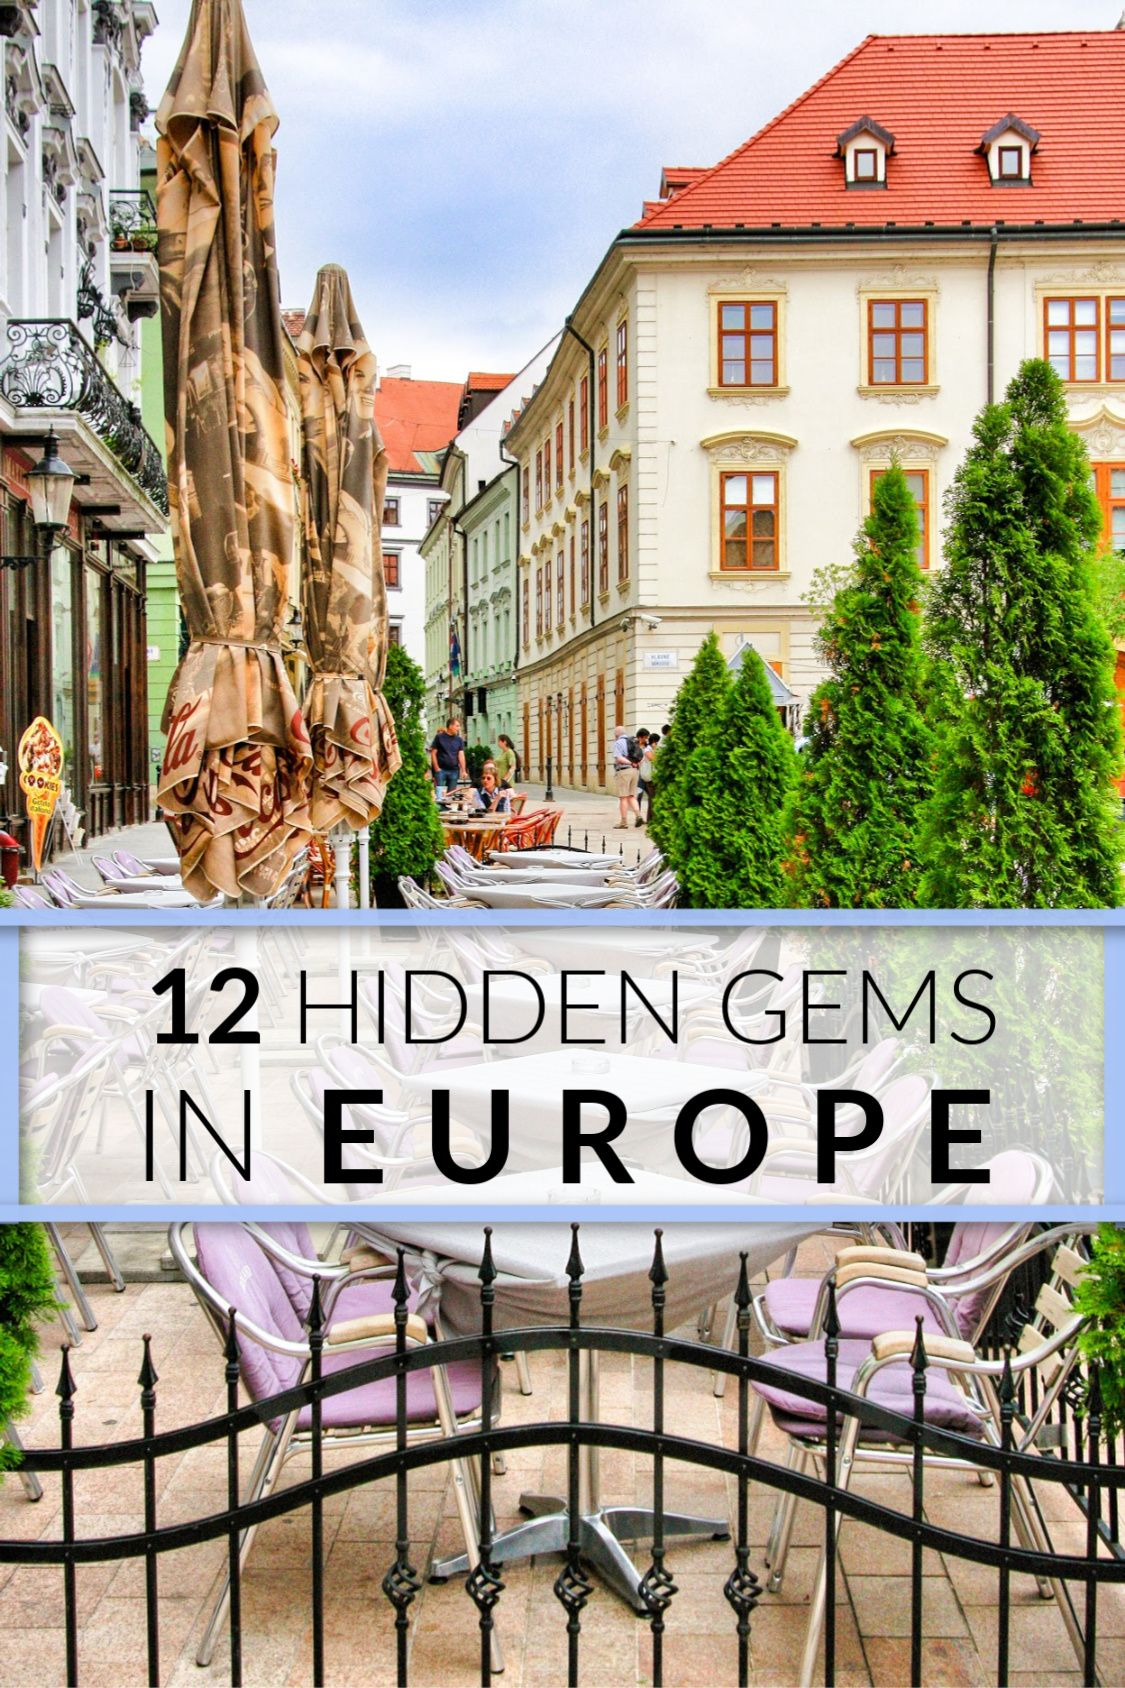 London, Rome and Paris seem to get all the glory. This year, skip Europe's biggest tourist traps and instead explore some of its lesser known beautiful destinations. If you haven't heard of Perast, Mdina, or Figeac, then hopefully your bucket list just grew a little longer. Check out my list of some of Europe's best hidden gems for some off-the-beaten-path travel inspiration!